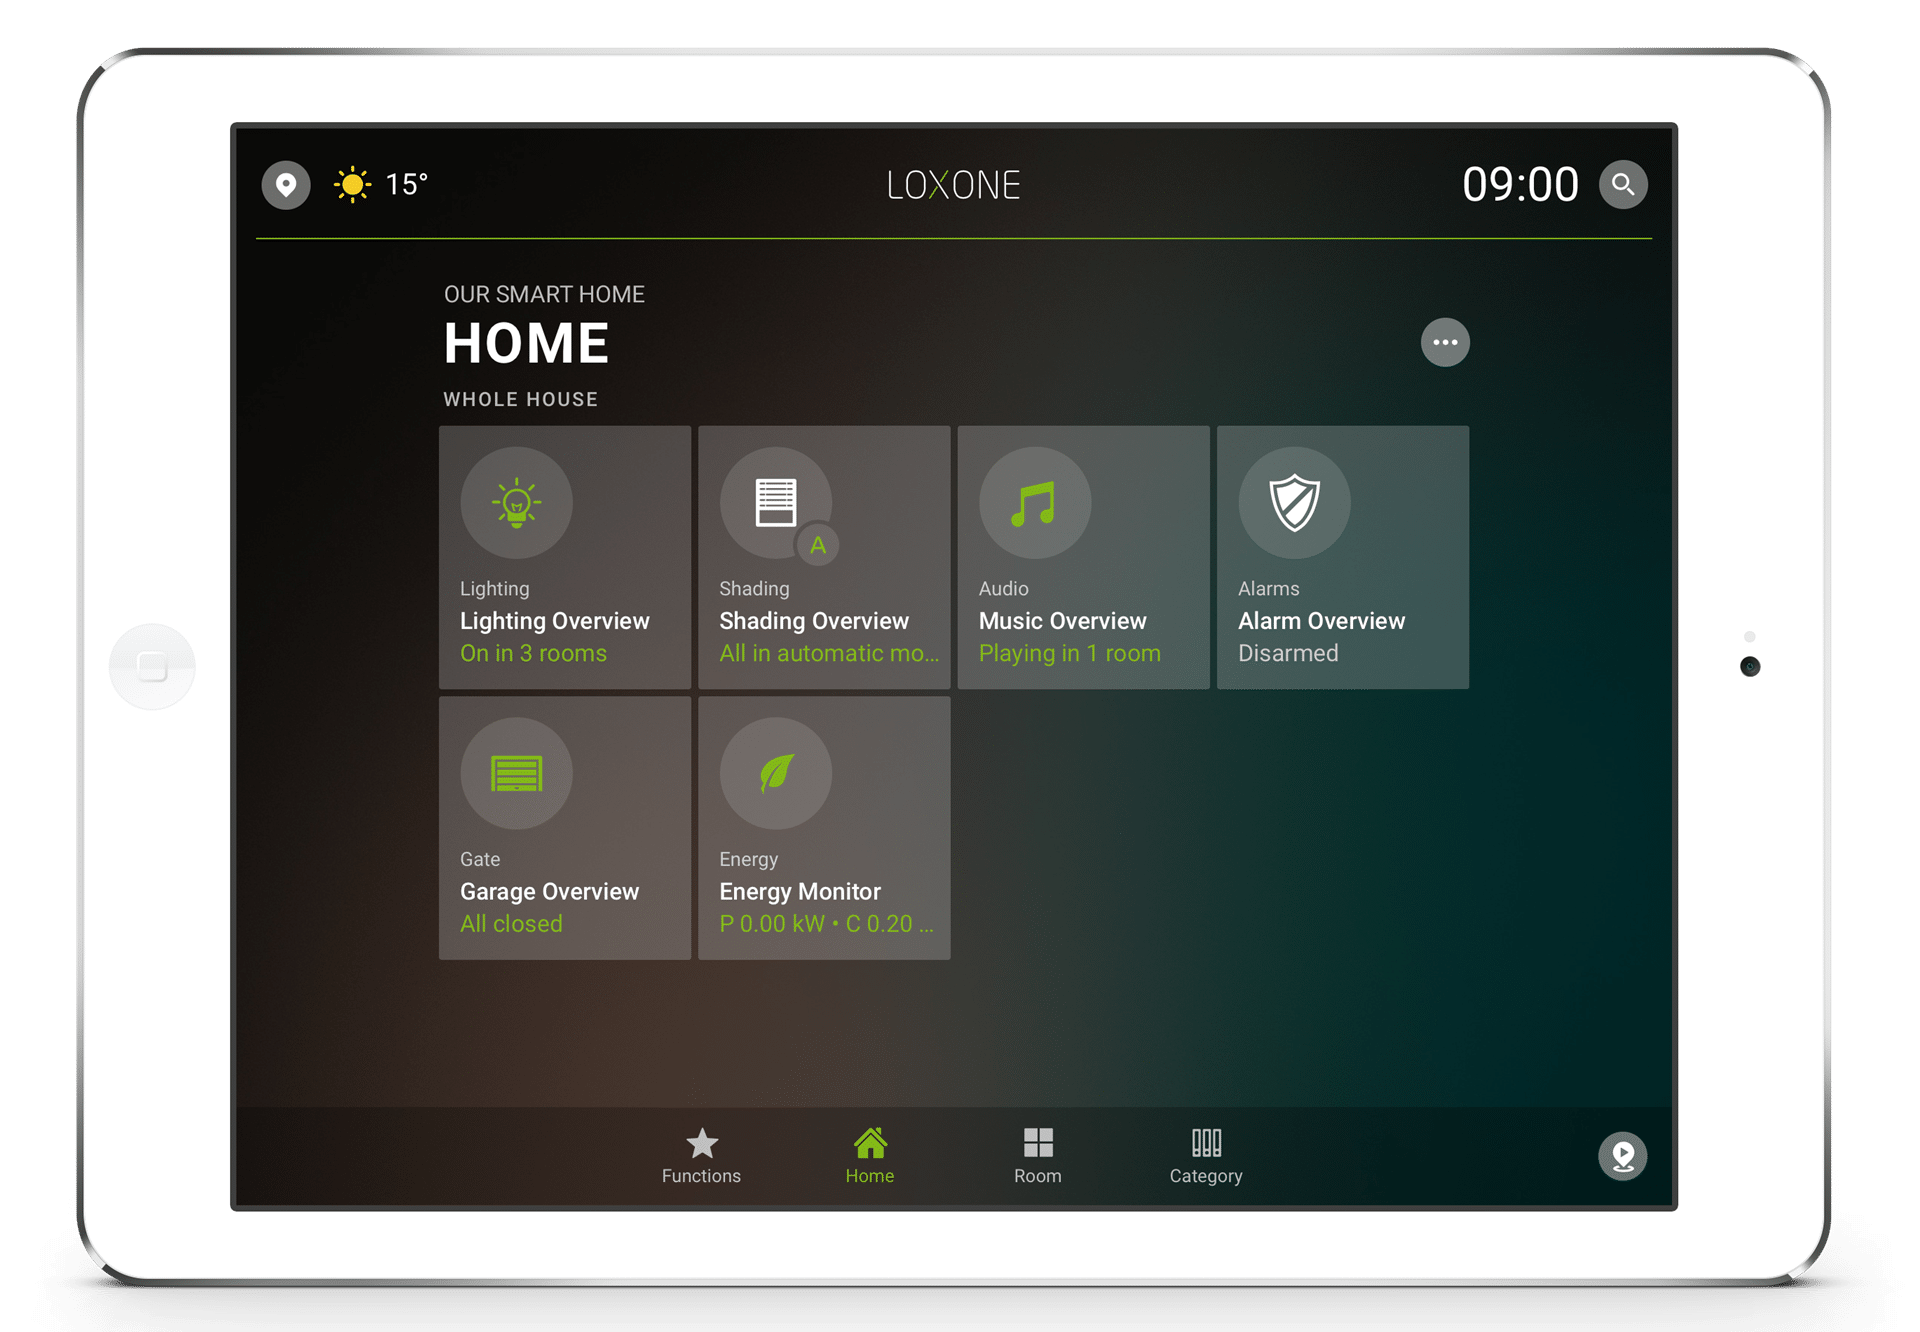 Loxone-Smart-Home-App-Tablet-Home-Tab-2.png